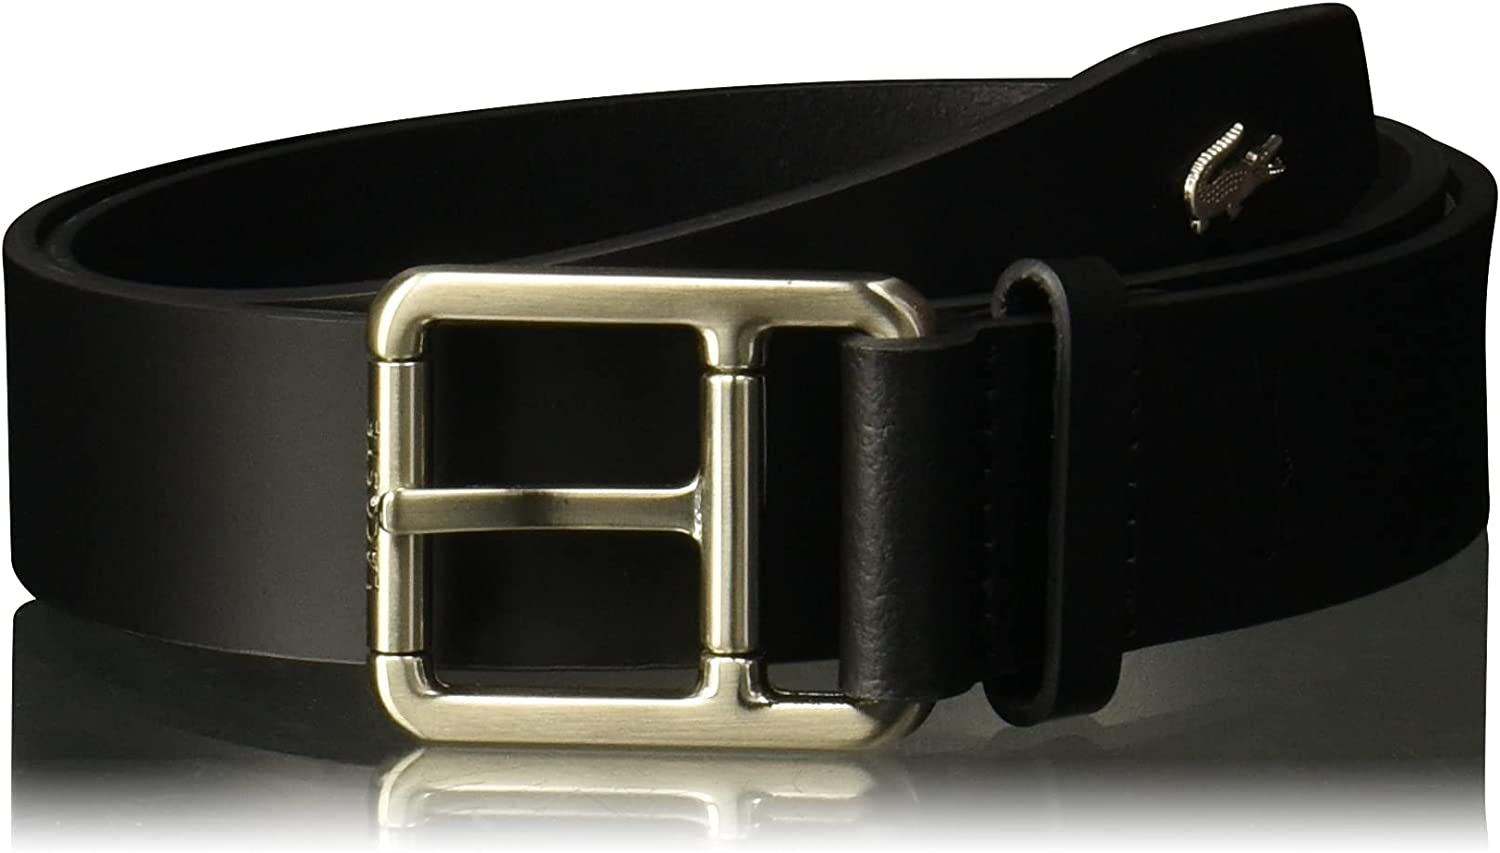 Free shipping on posting reviews Lacoste Men's Buckle Belt Croc Las Vegas Mall Detailing W